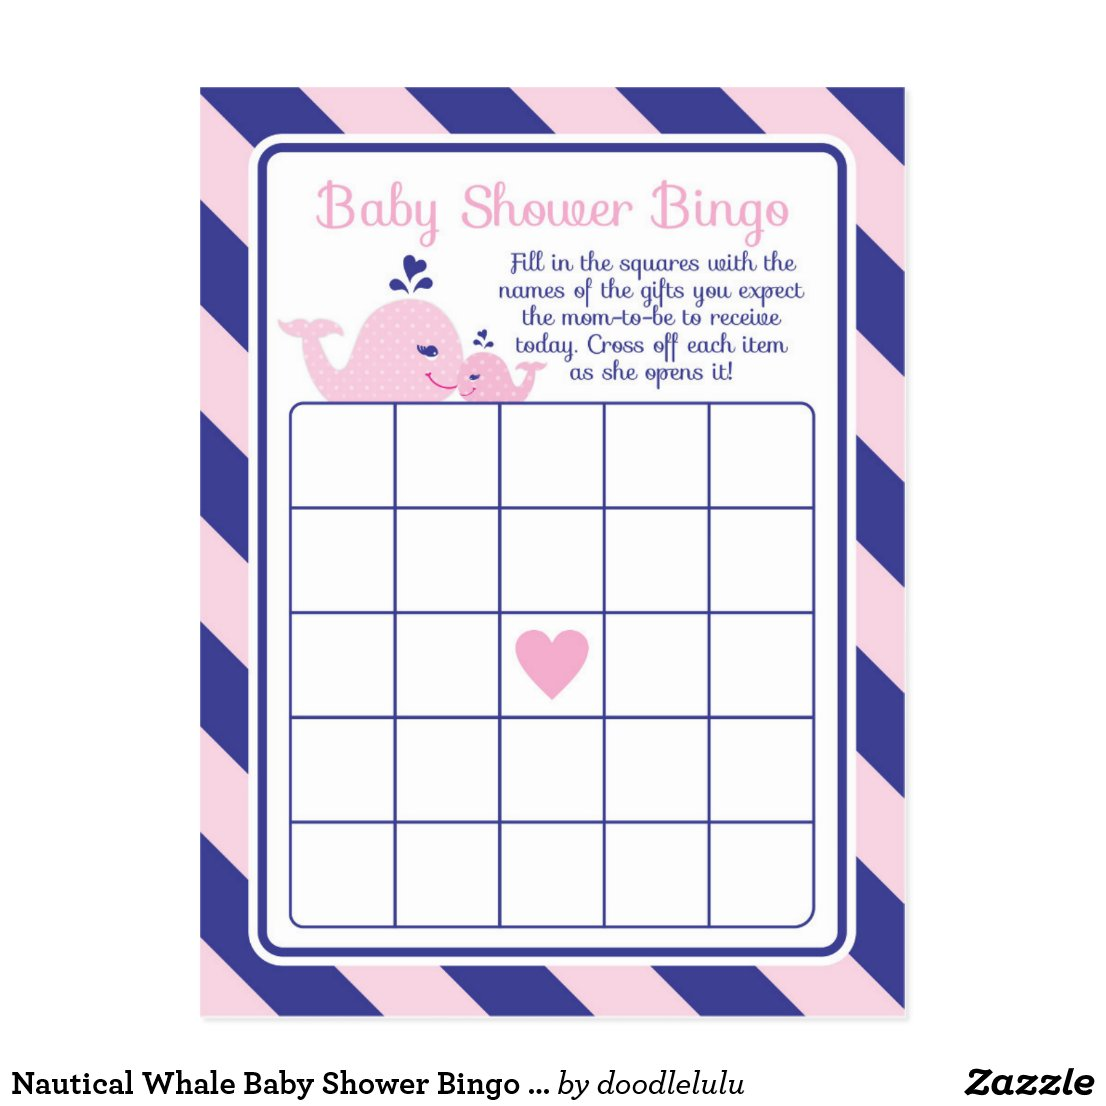 Nautical Whale Baby Shower Bingo Game pink & navy Postcard